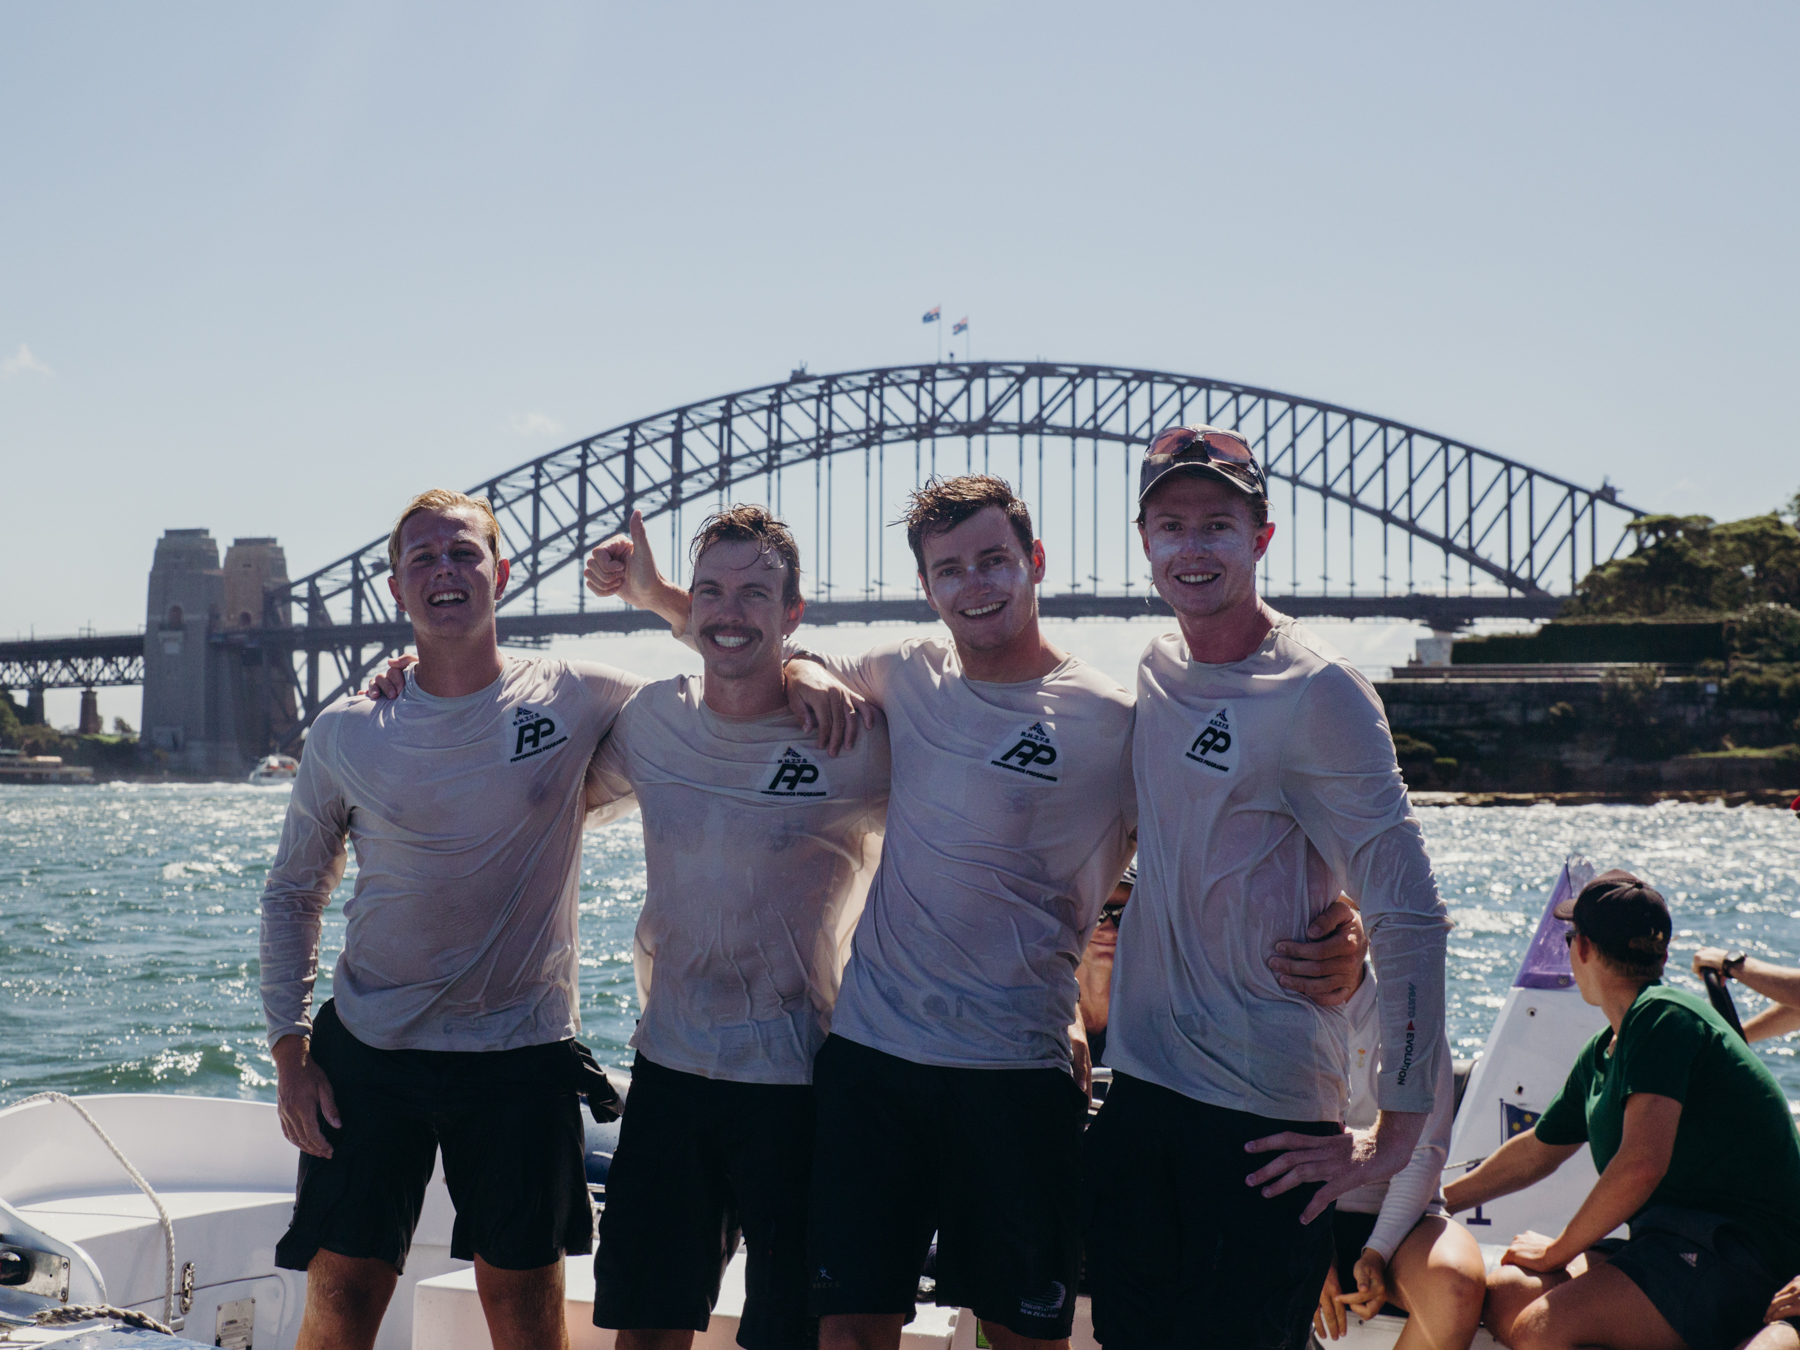 Hardy Cup winners RNZYS with the Harbour Bridge in the background. Photo credit Darcie C Photography